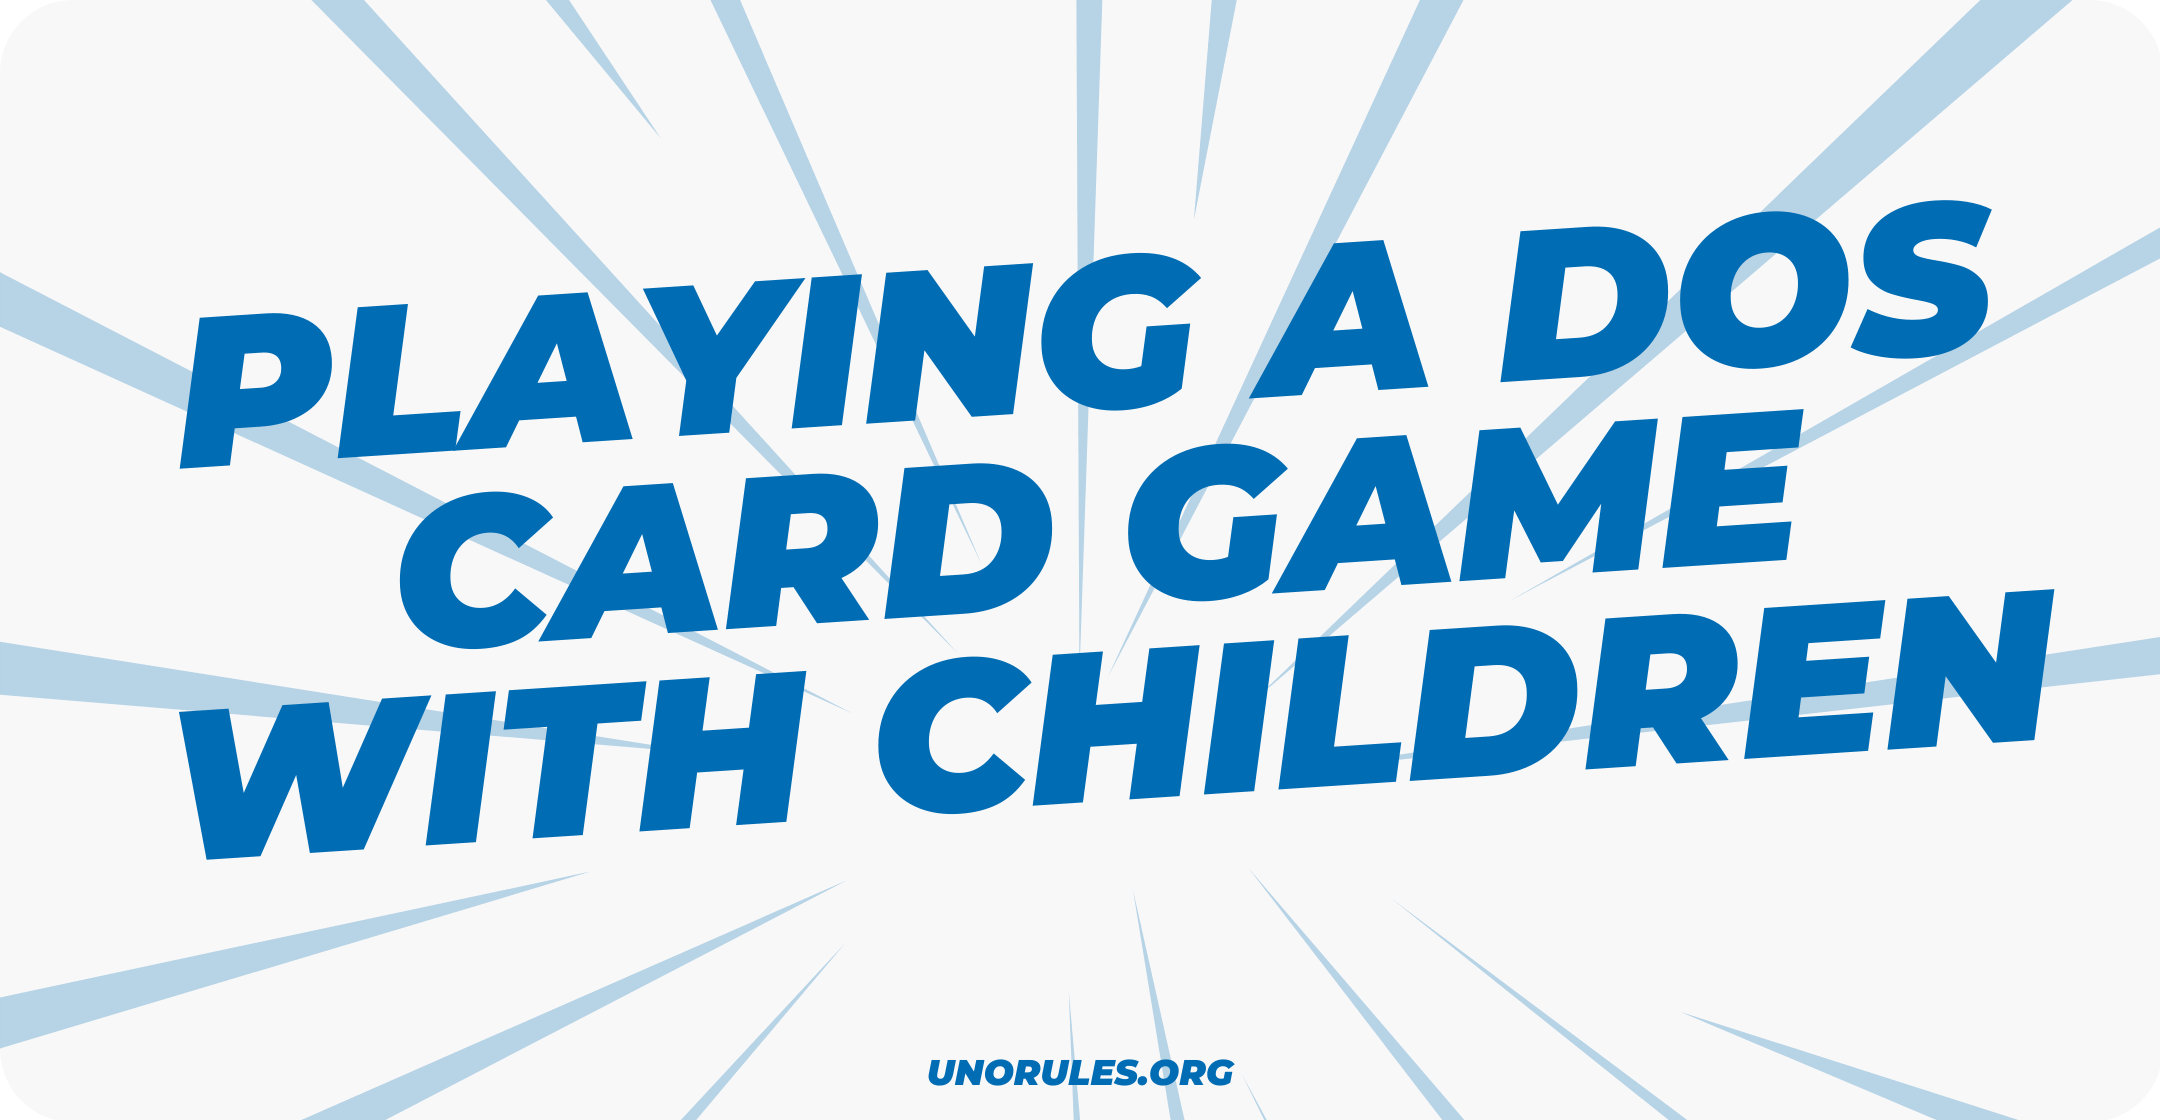 Playing a Dos card game with children